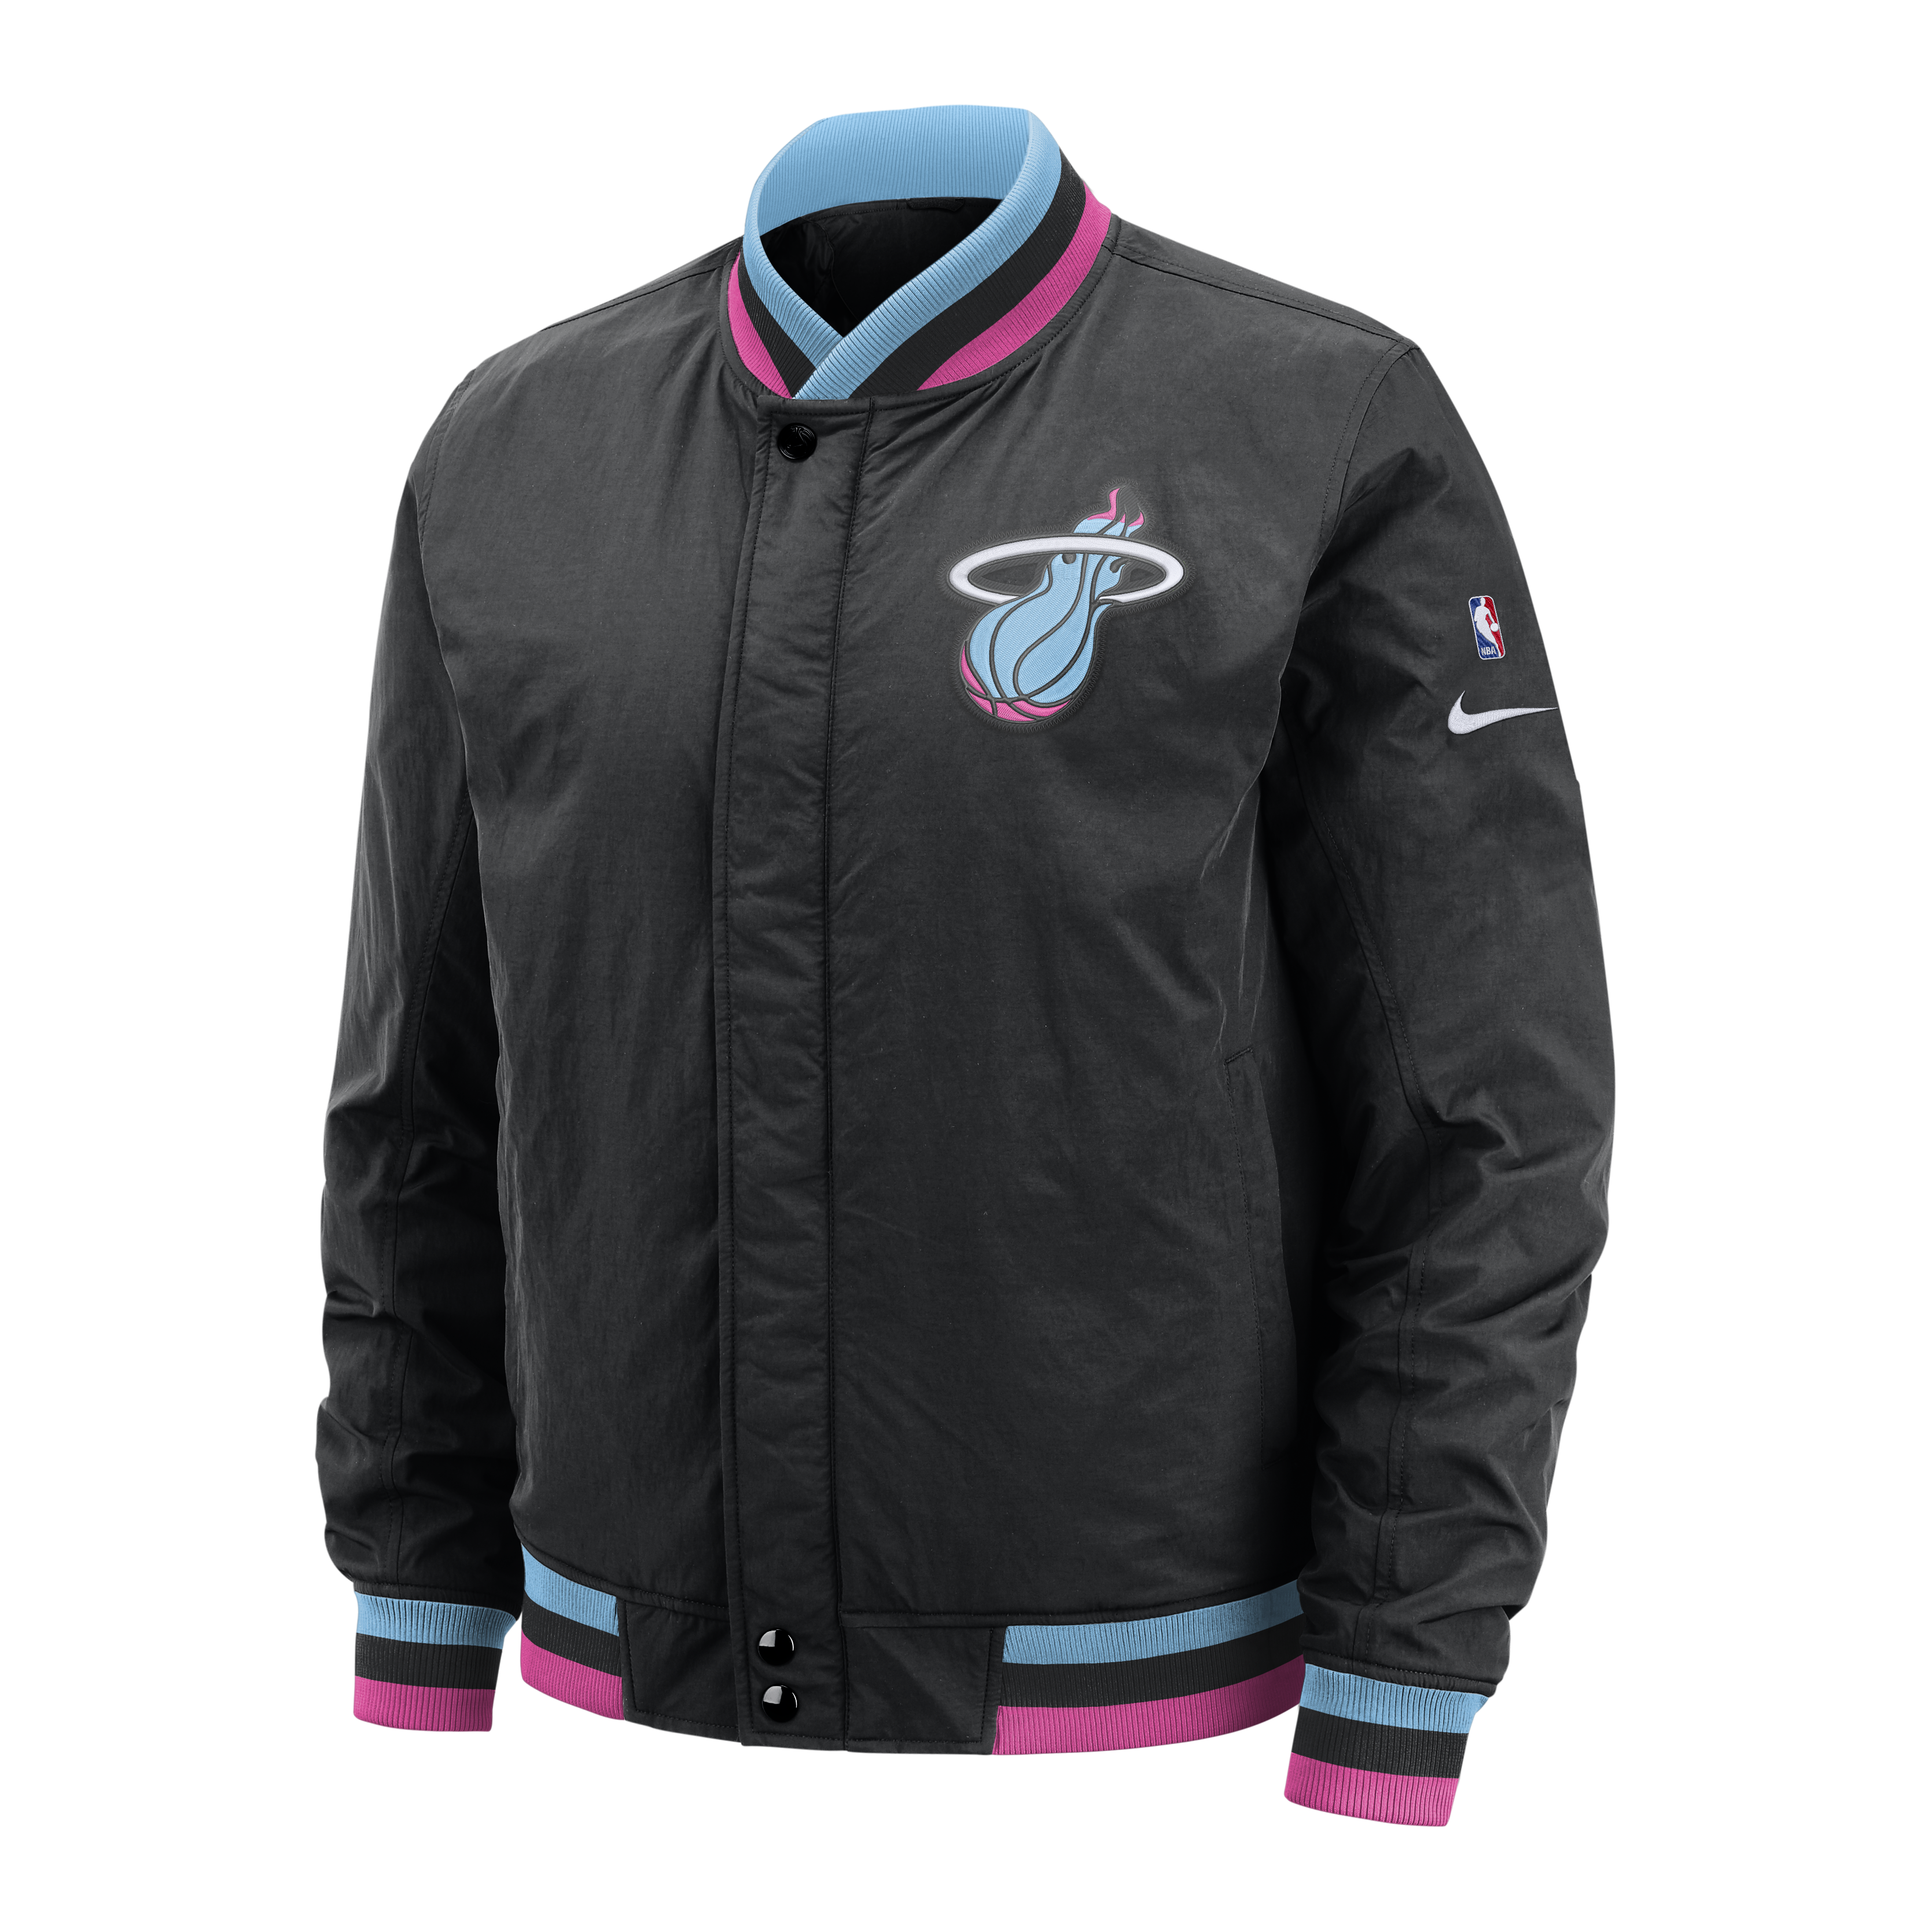 online retailer aa42c d7bf9 Nike Miami HEAT Vice Nights Courtside Jacket – Miami HEAT Store